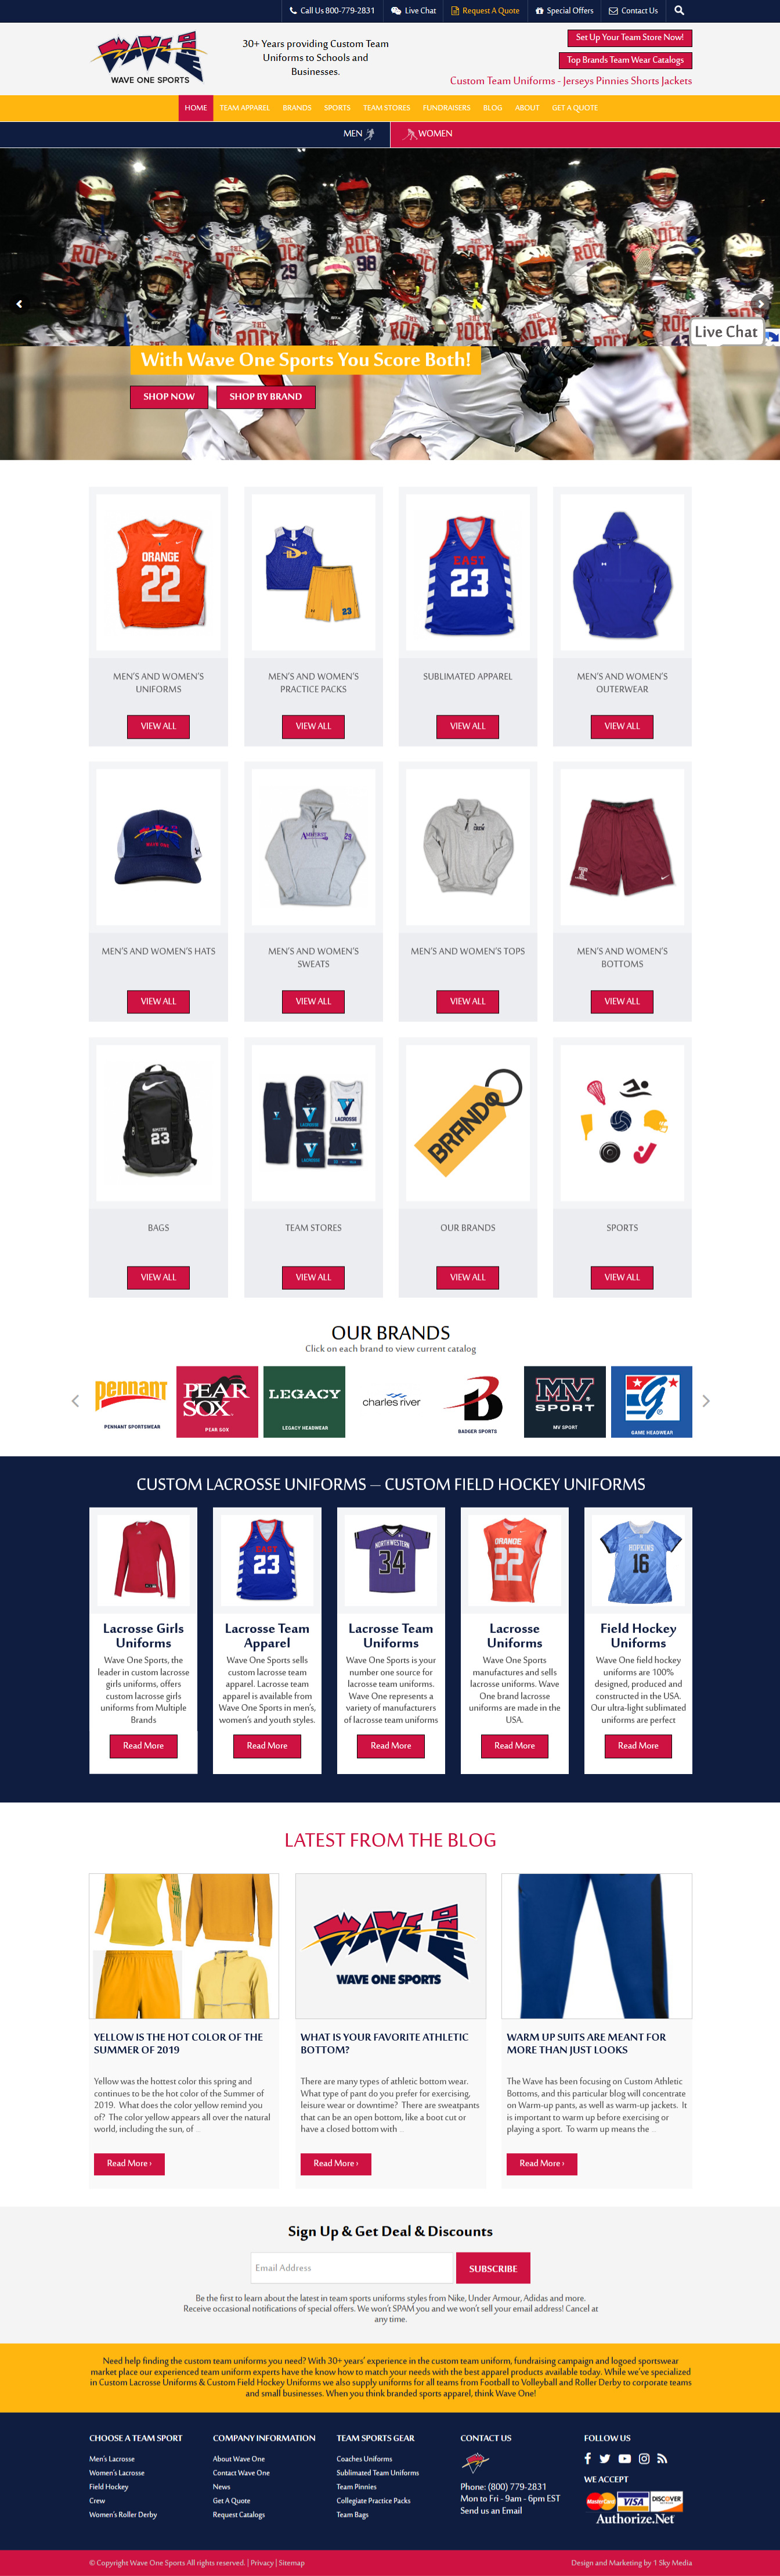 Wave One Sports custom sports team uniform website design